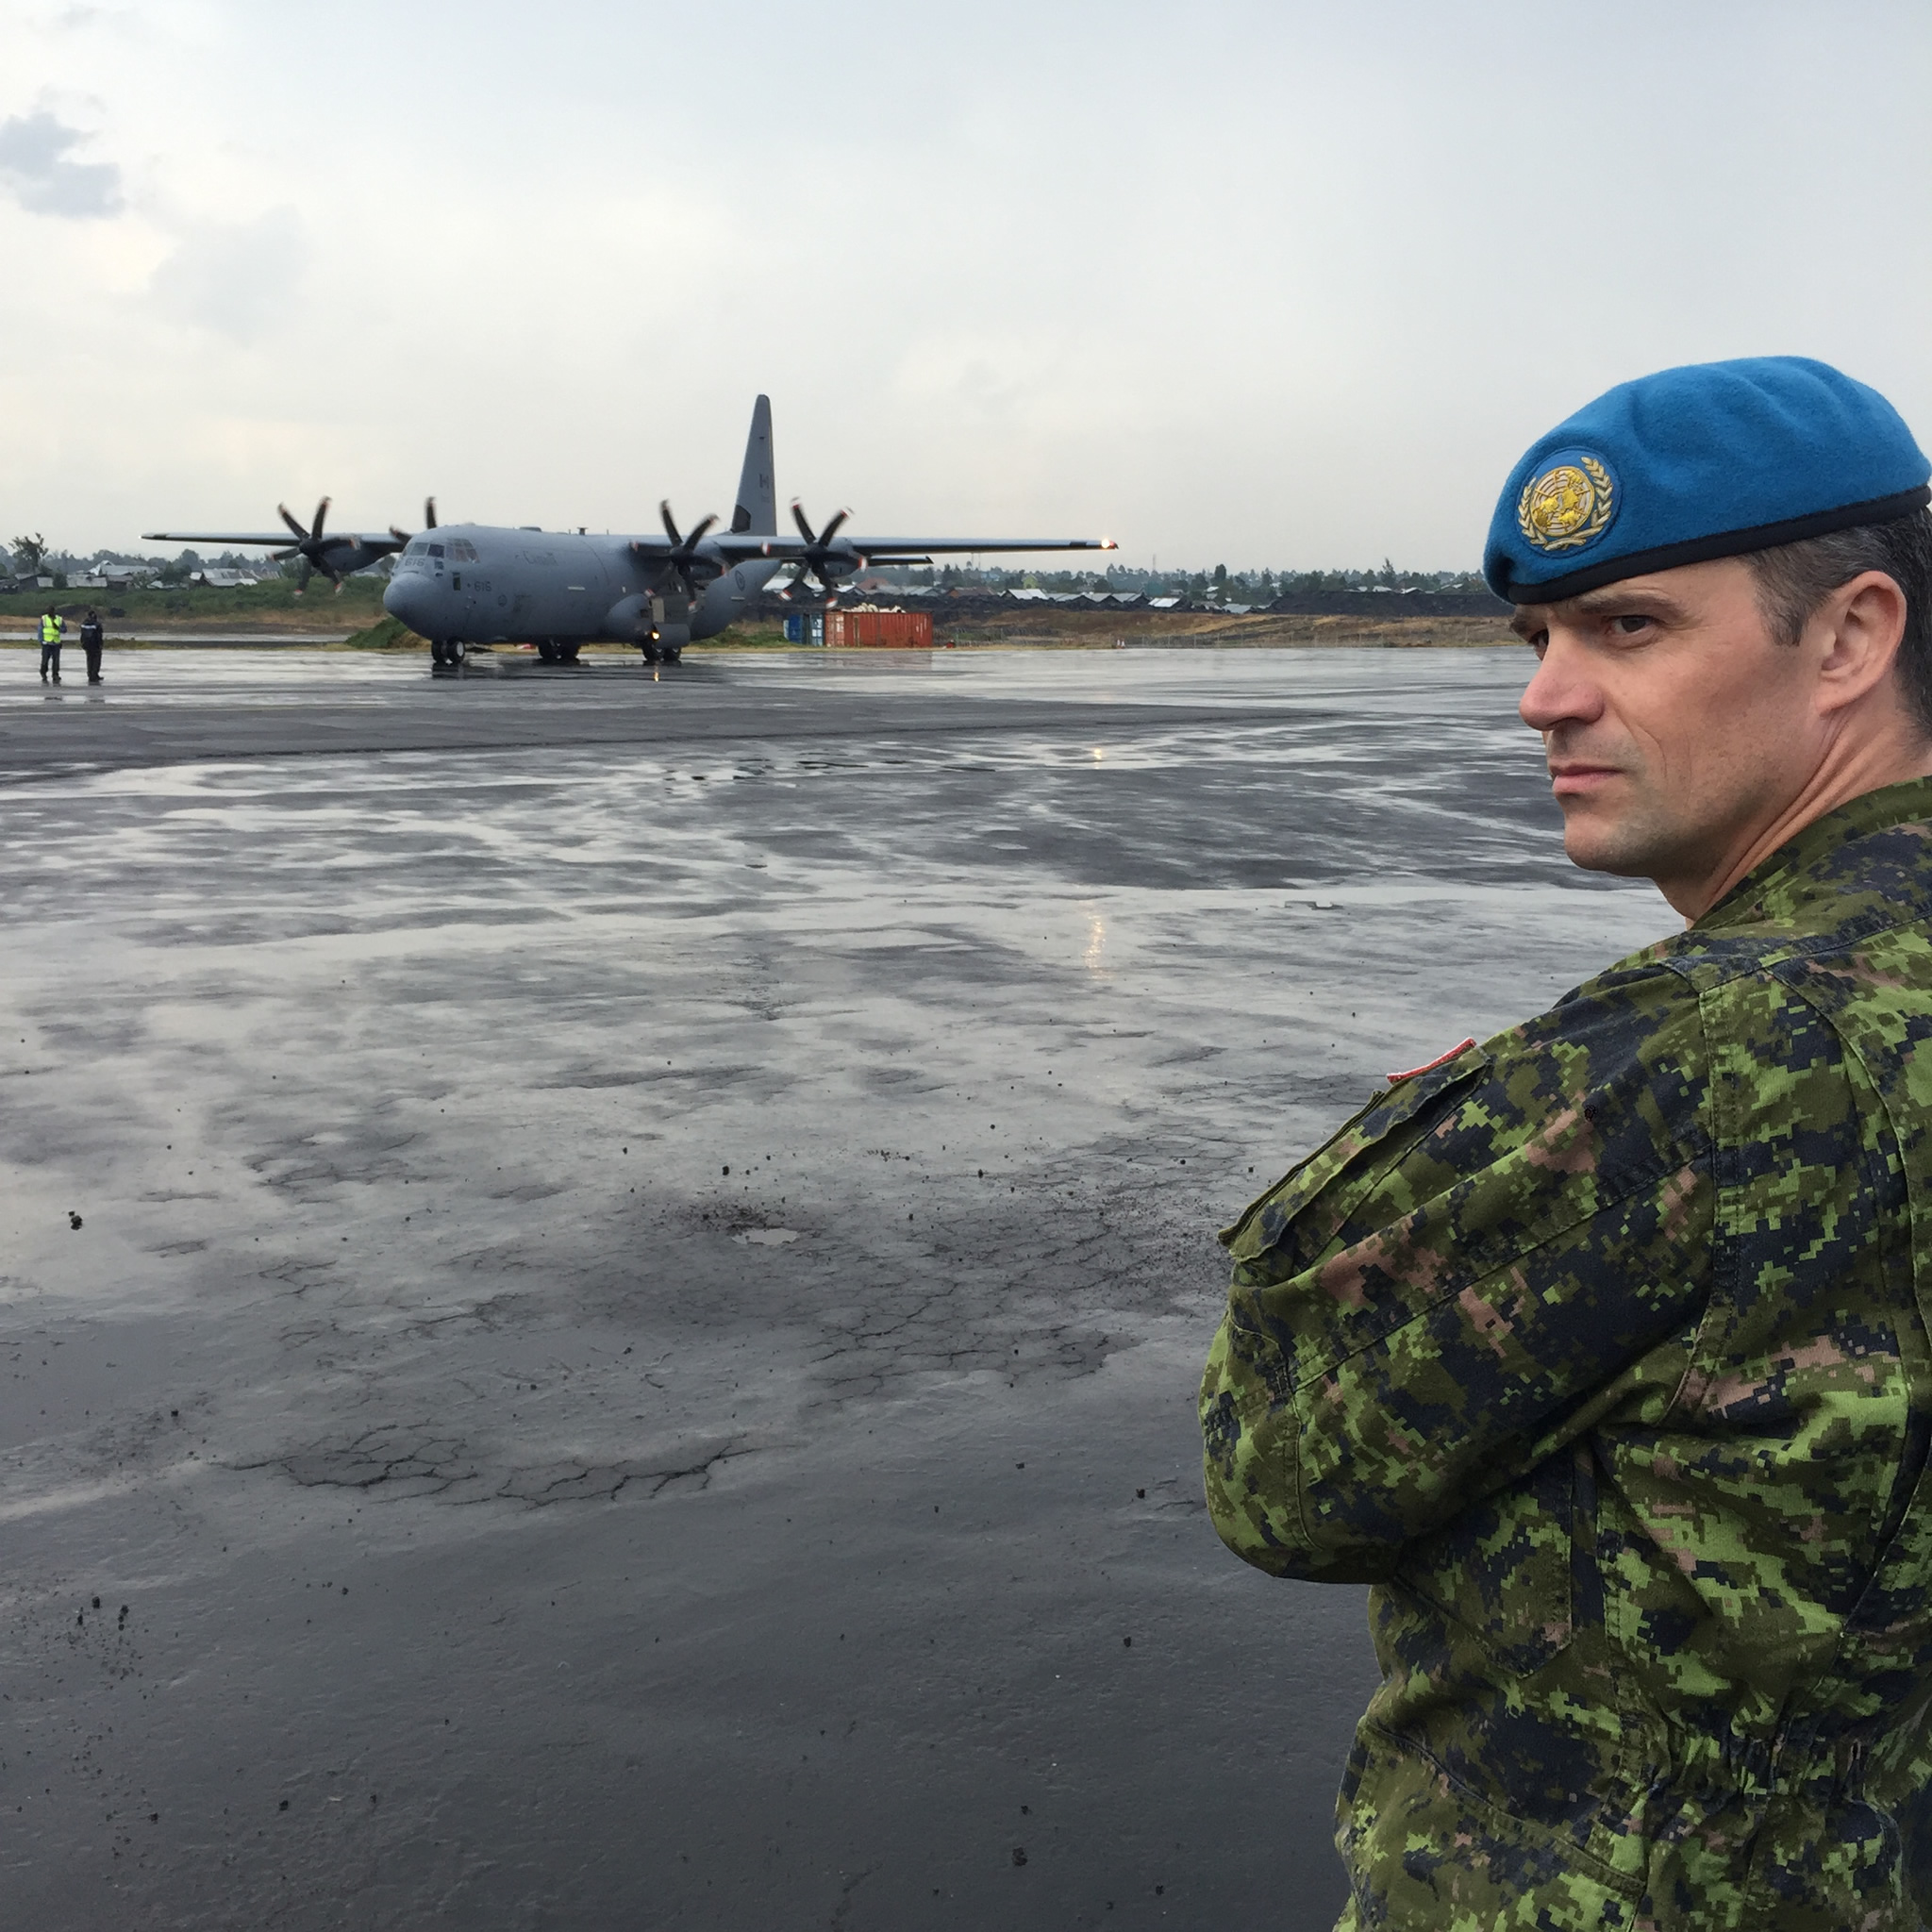 Democratic Republic of the Congo. October 2016 – Colonel Huet, the Task Force Commander of Operation CROCODILE, meets an RCAF CC-130J that is delivering goods to the Canadian contingent. (Photo credit: MONUSCO)